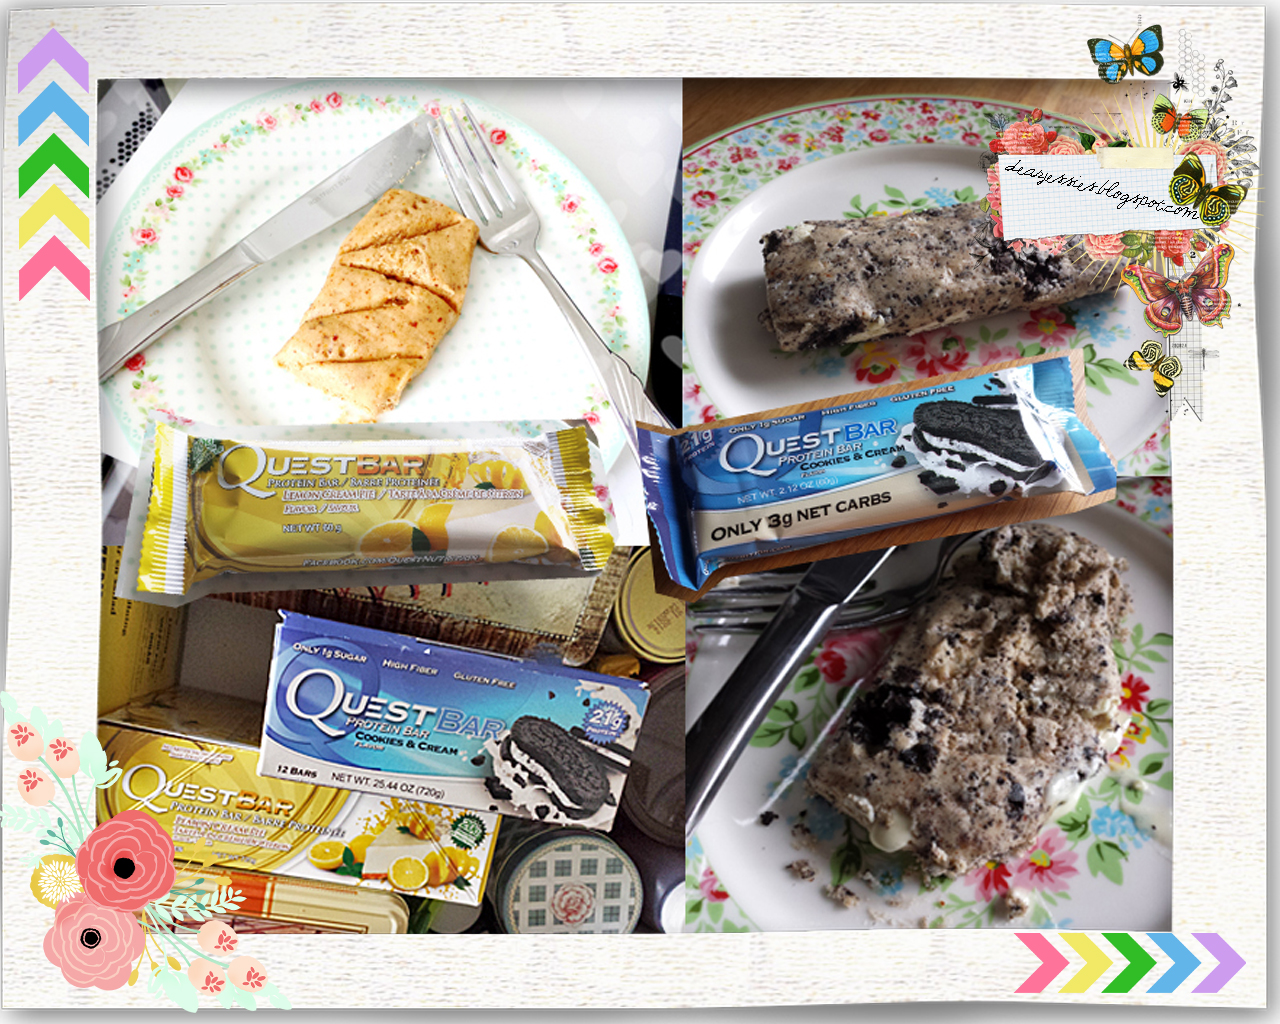 #cheatclean, Questbars, Quest, Quest cookies and cream